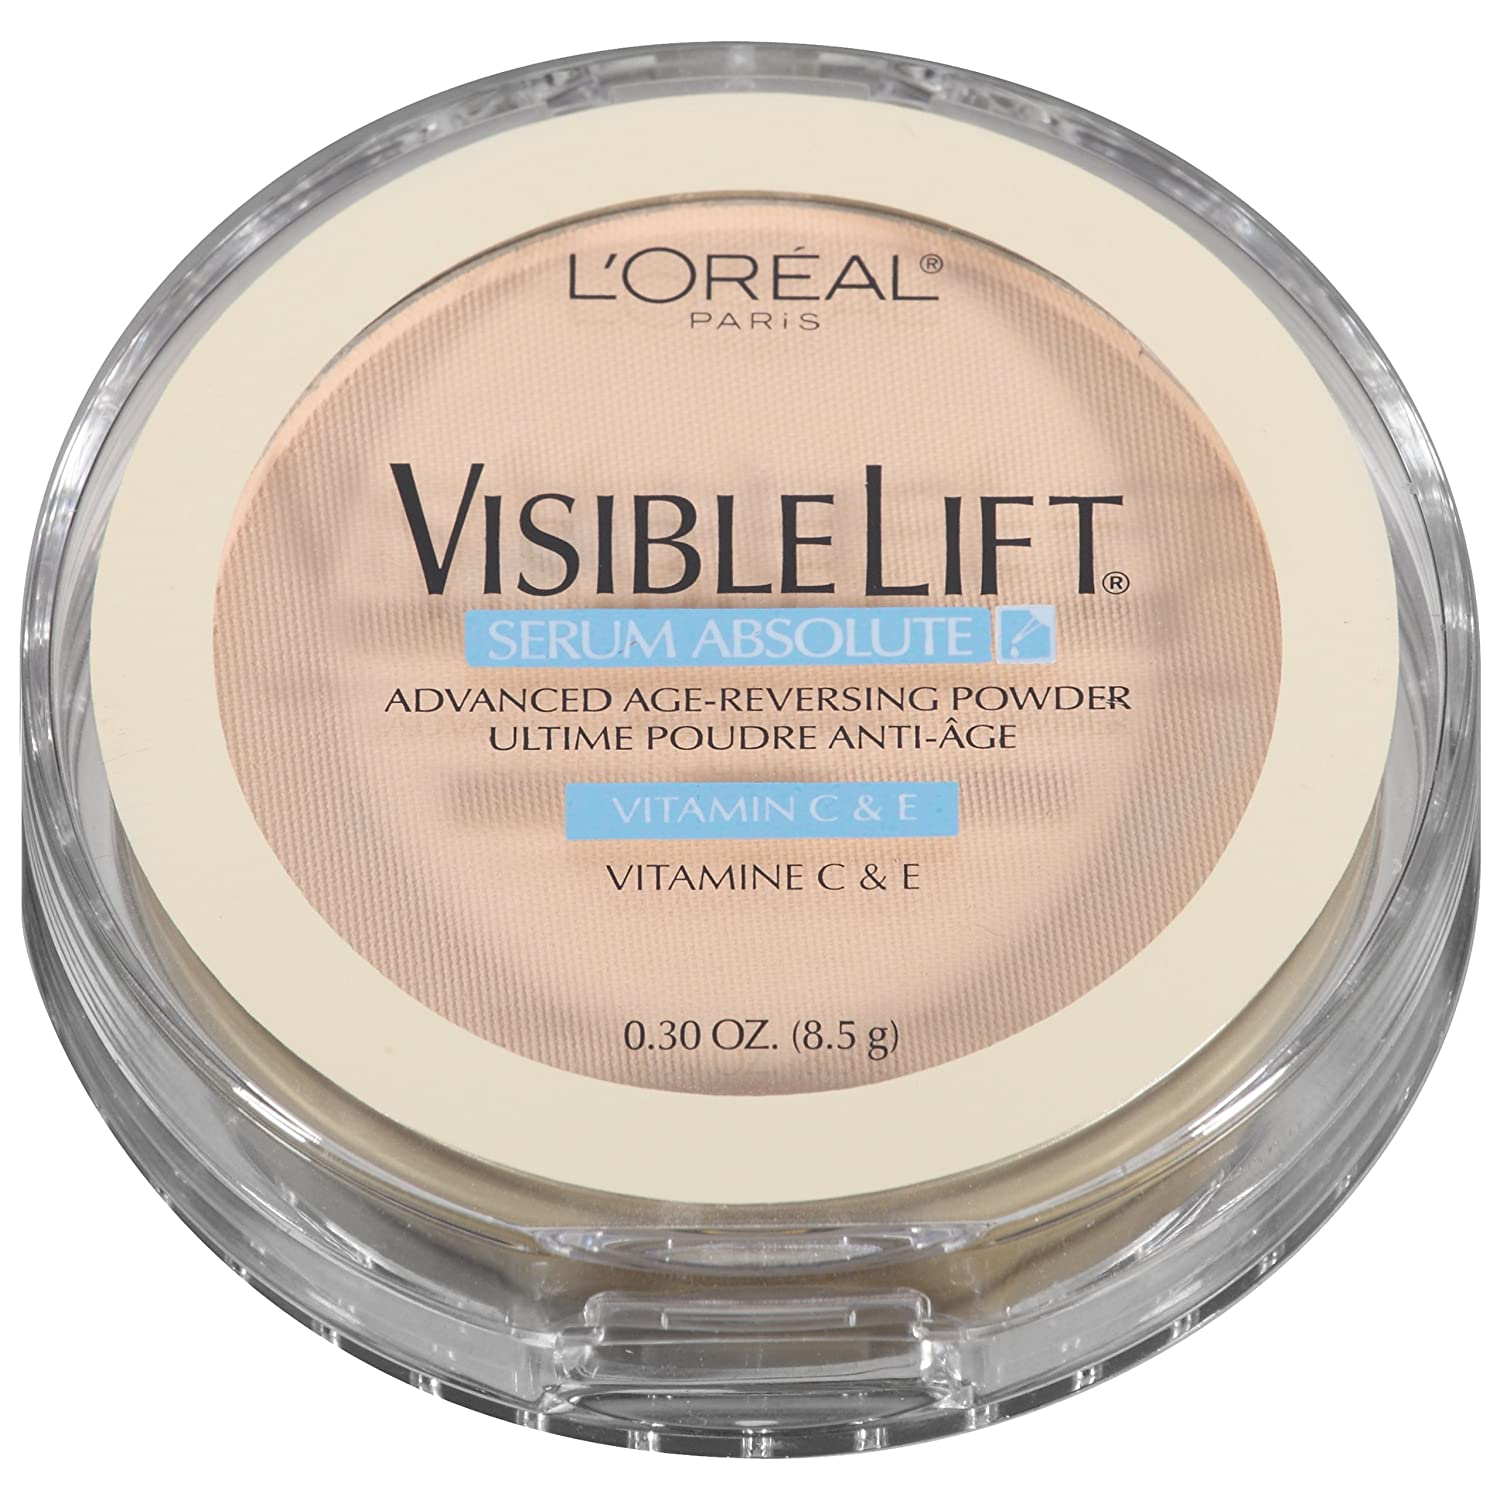 L'Oreal Paris Visible Lift Serum Absolute Advanced Age-Reversing Powder, Fair, 0.28 Ounces